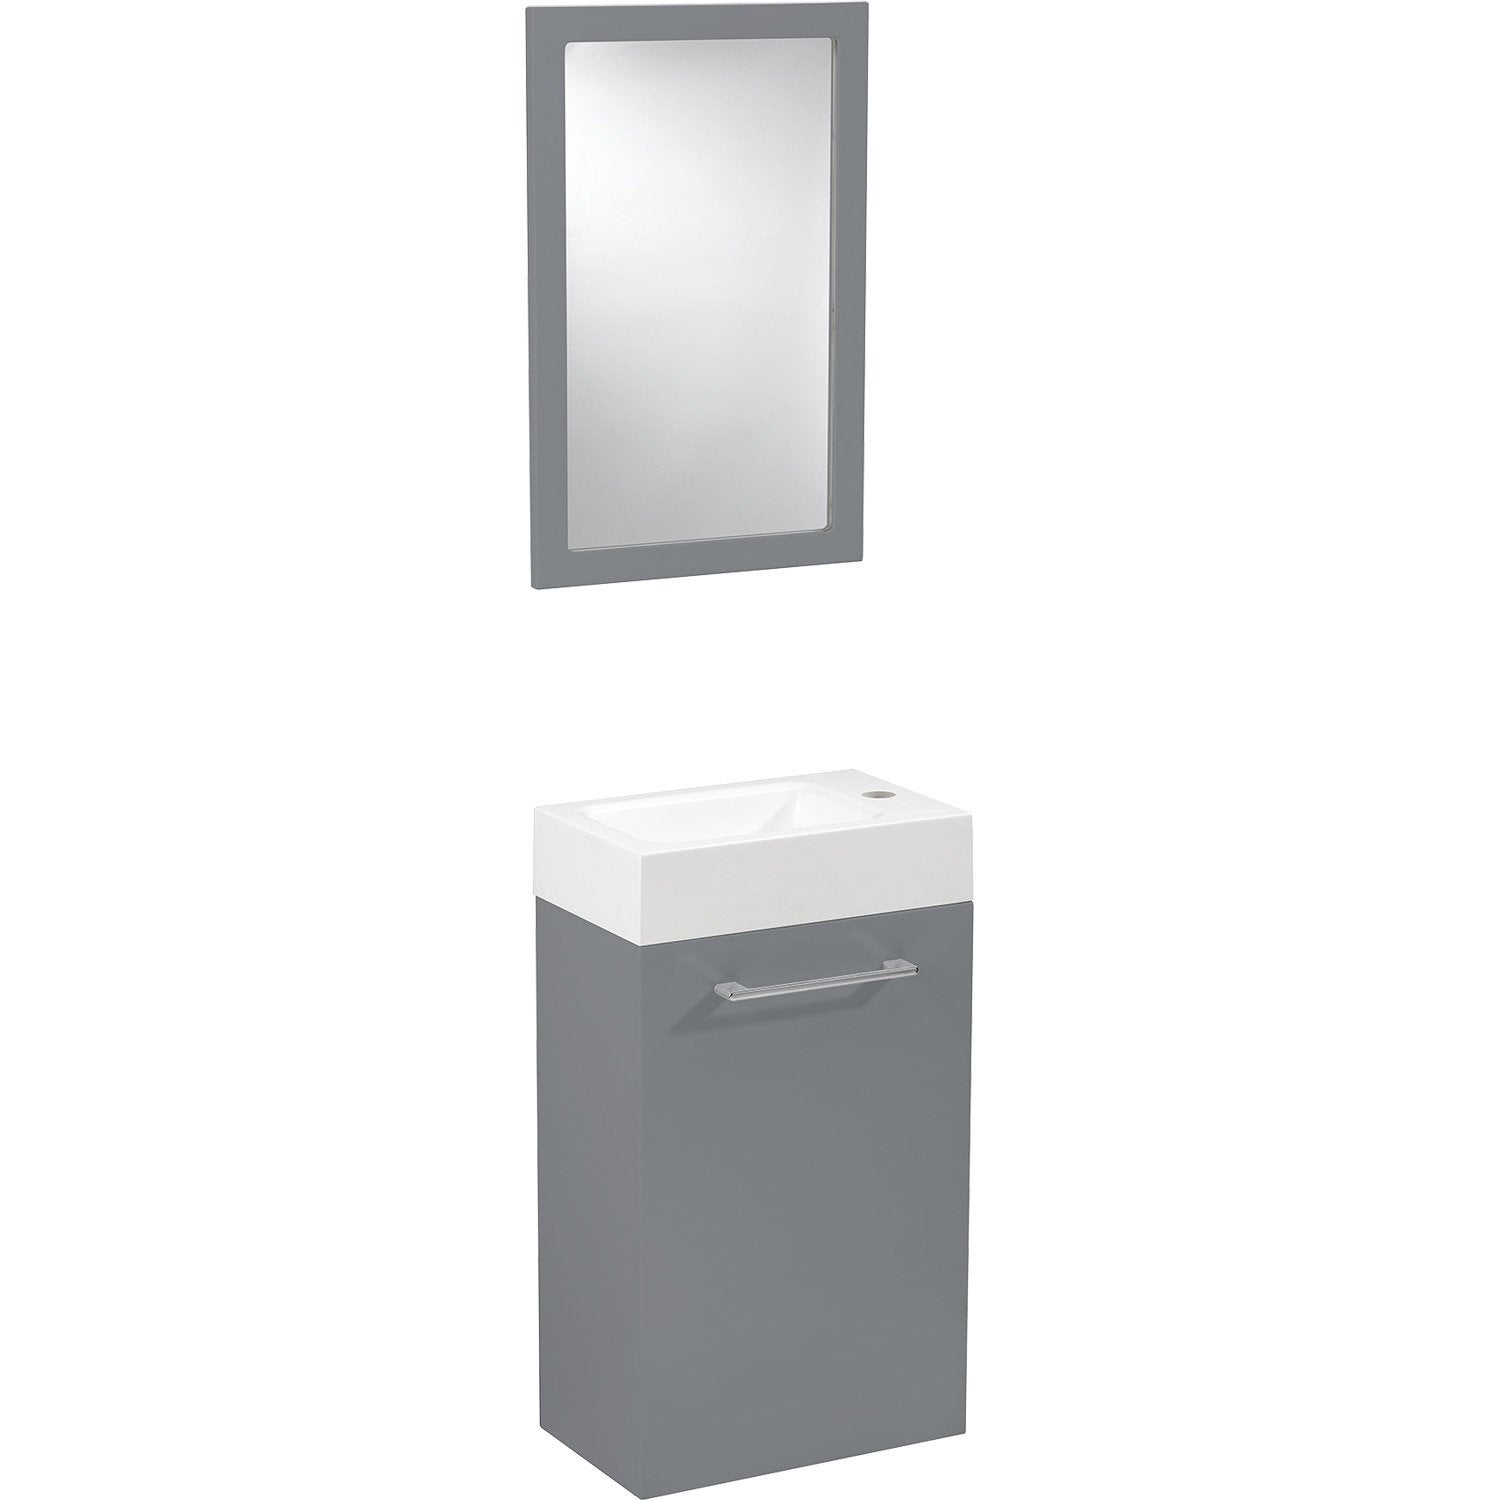 Meuble lave mains avec miroir gris galet n 3 sensea remix for Meuble de toilette leroy merlin